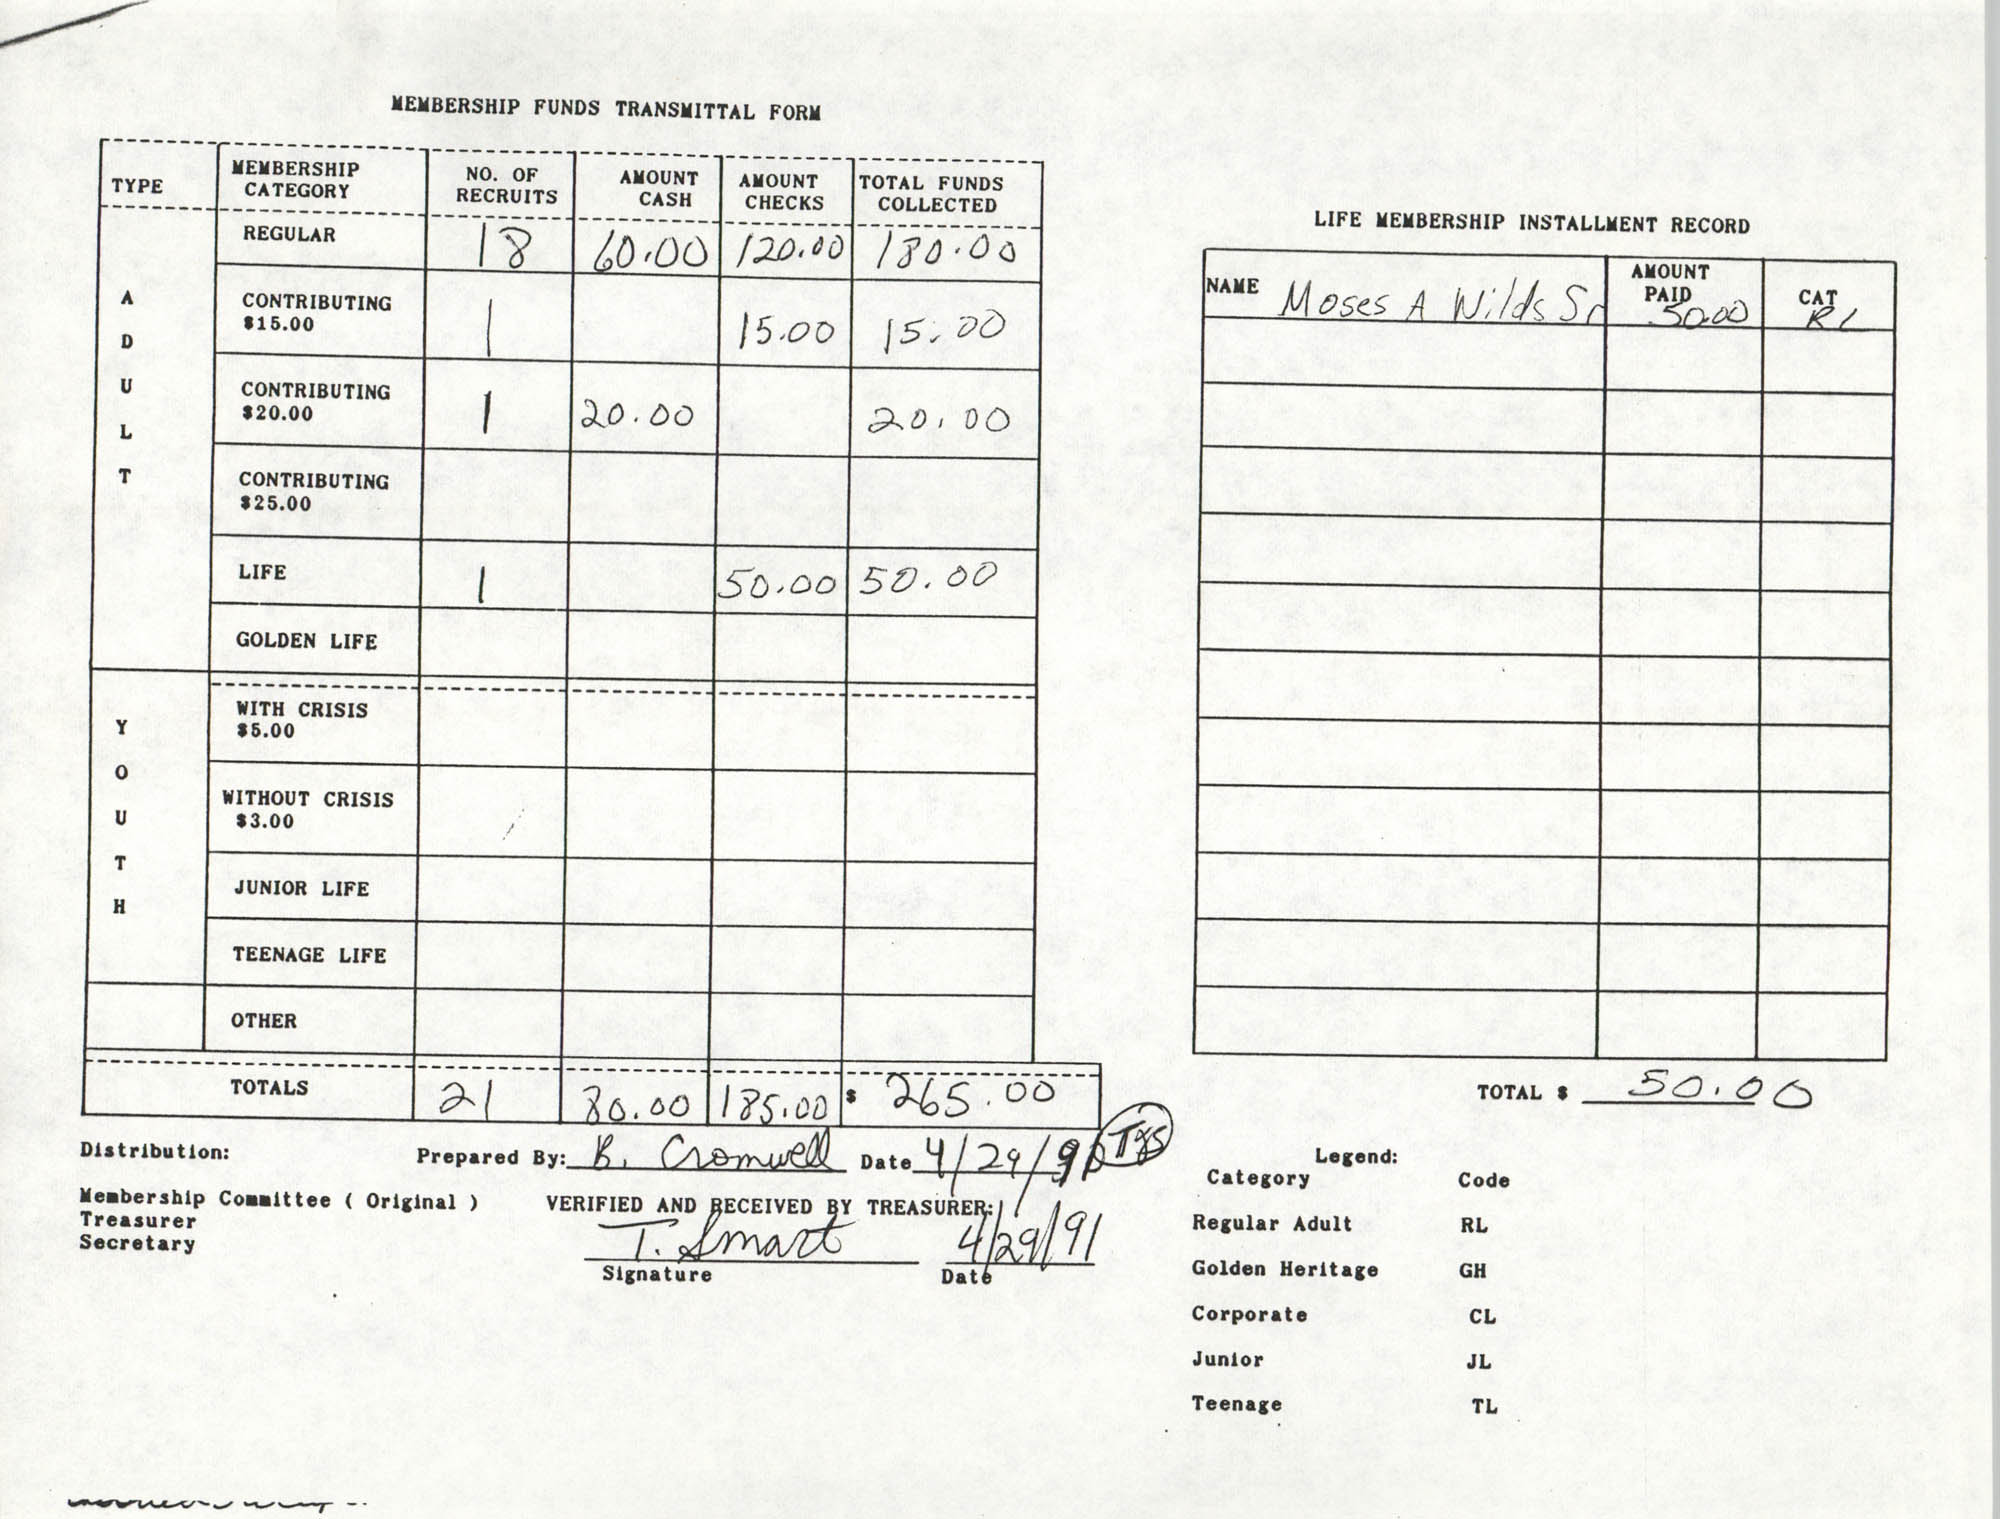 Charleston Branch of the NAACP Funds Transmittal Forms, April 1991, Page 9